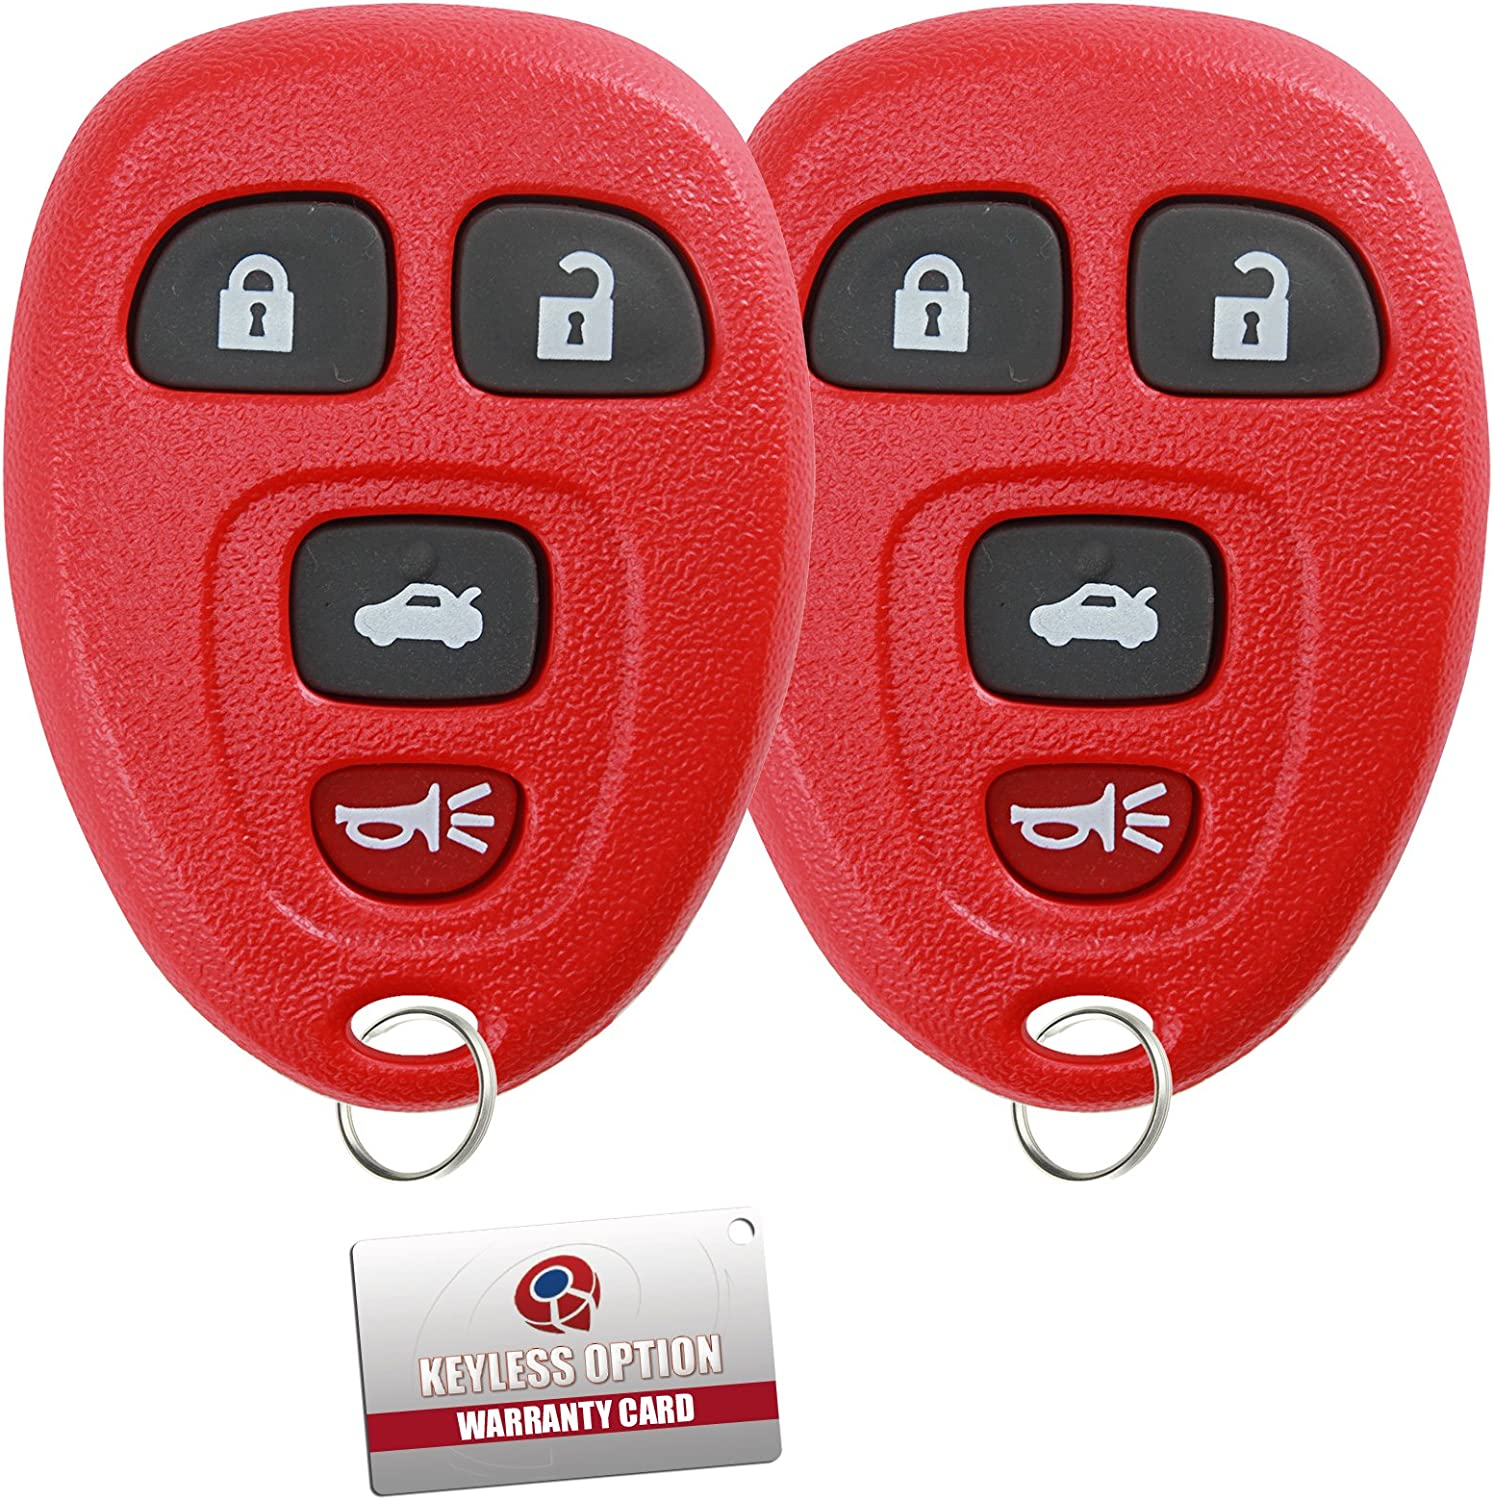 KeylessOption Keyless Entry Remote Control Car Key Fob Replacement for 15252034 Pack of 2 Blue